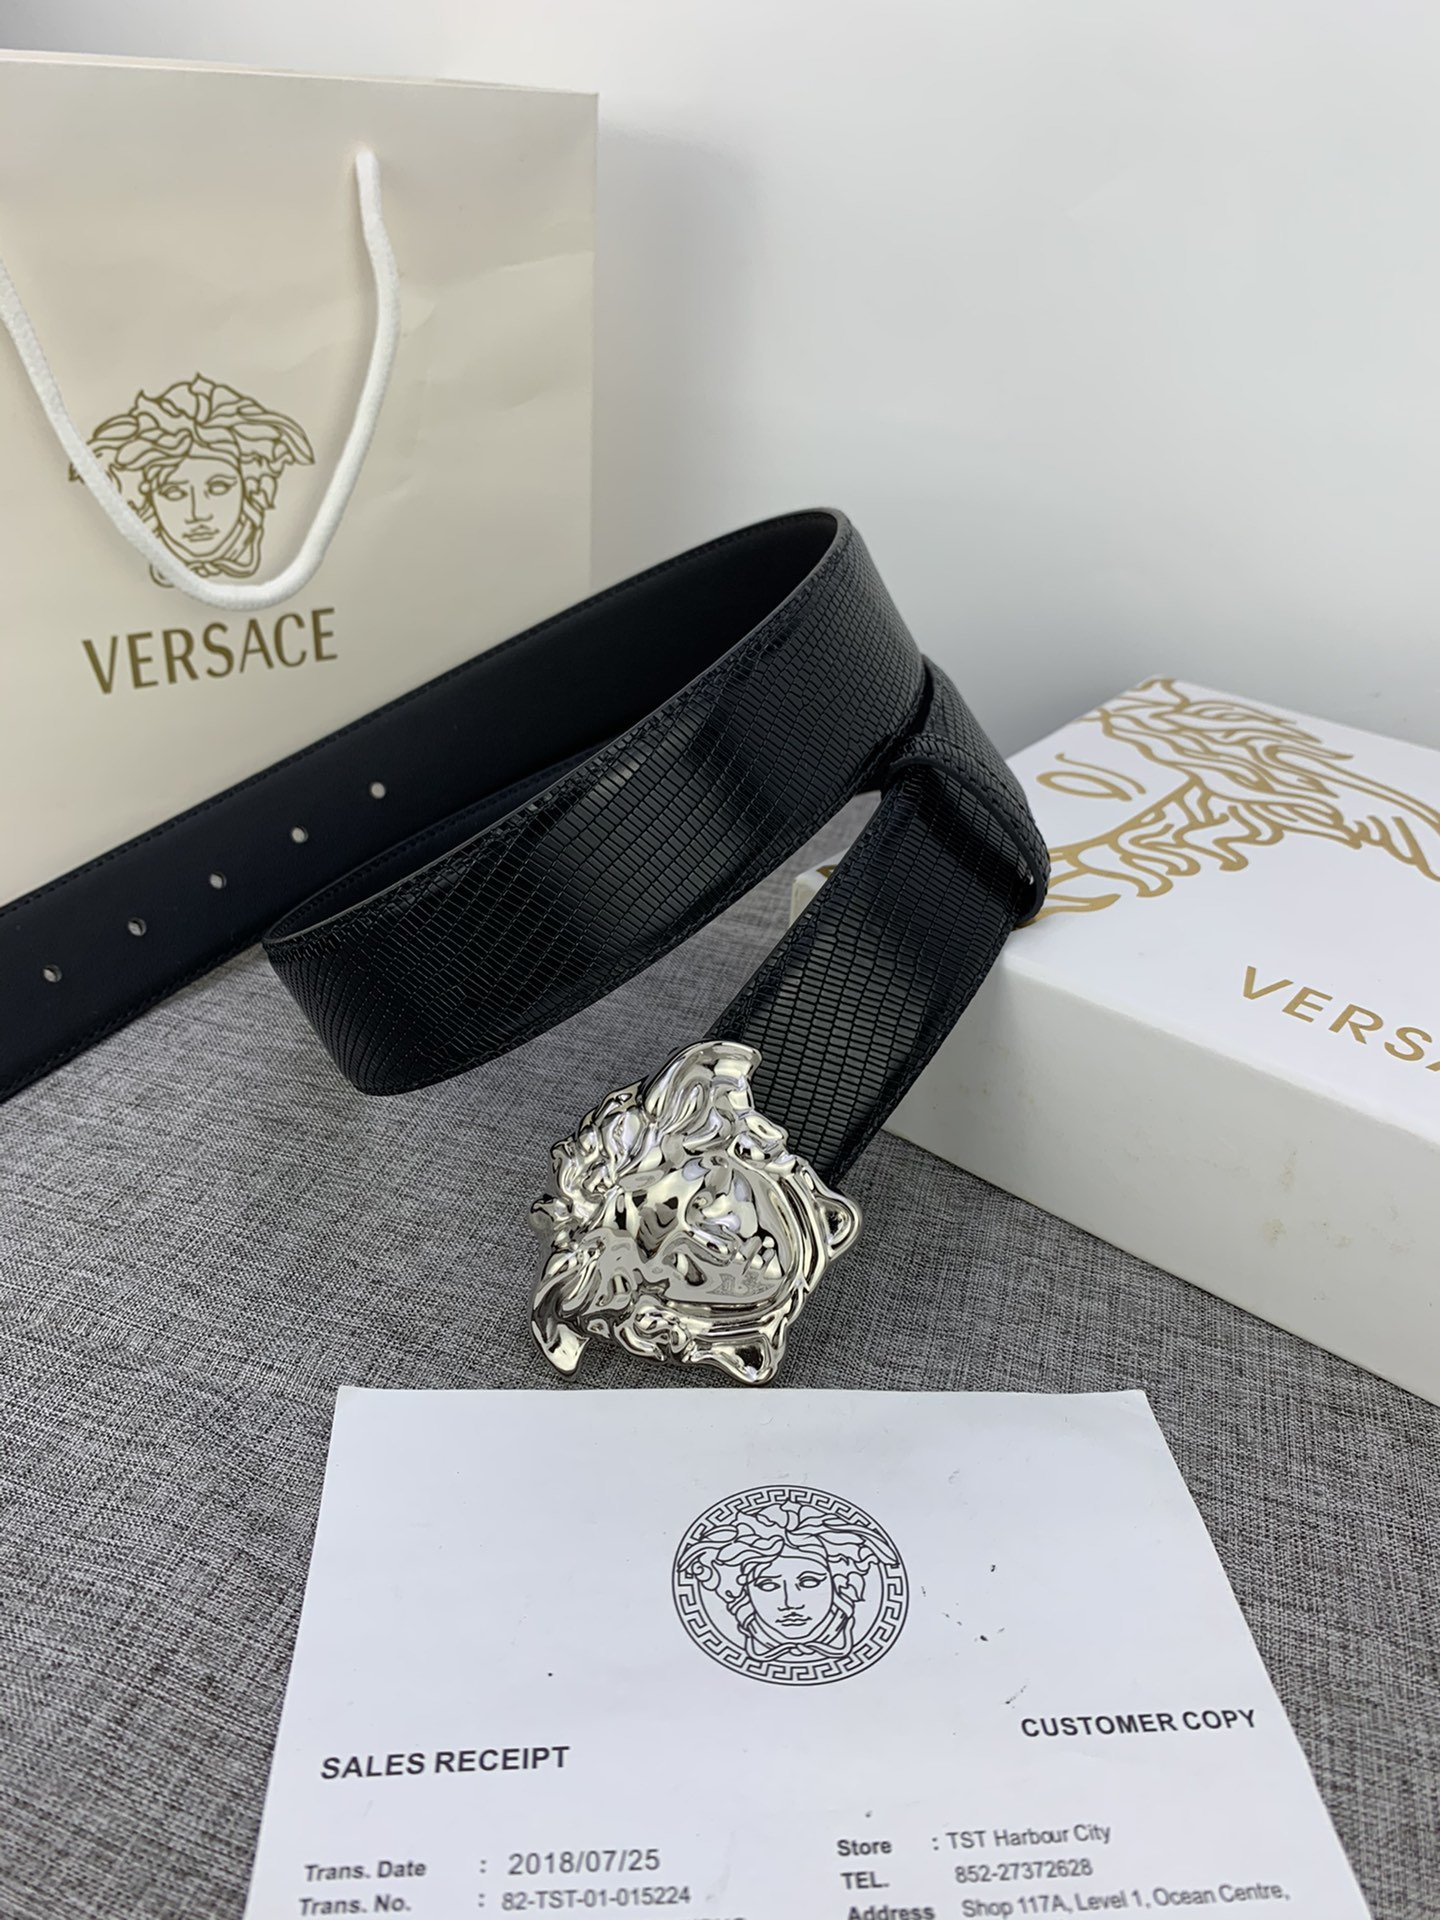 Cheap Replica Versace Men Reversible Leather Belt Width 4cm With Gold Buckle 024